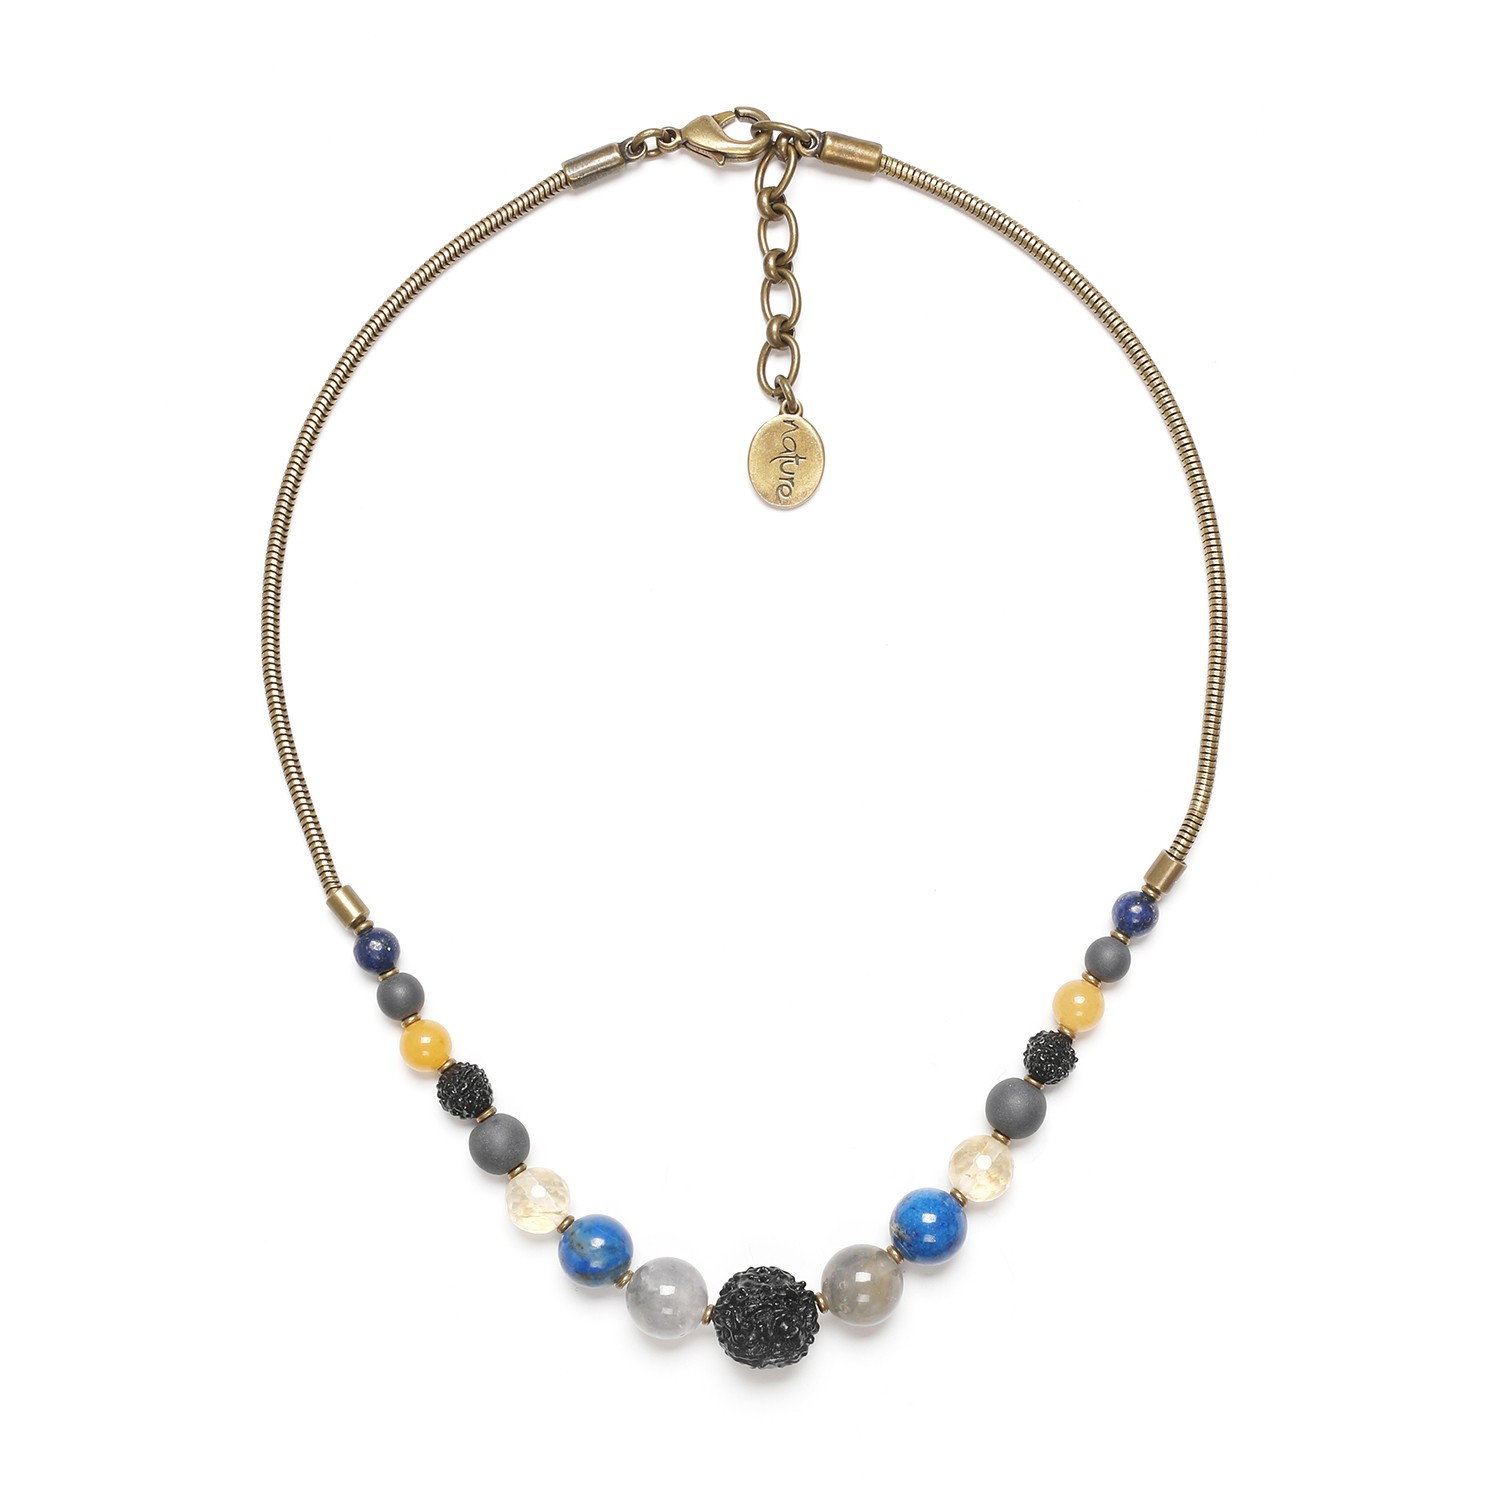 BLUE TRIBE graduated necklace